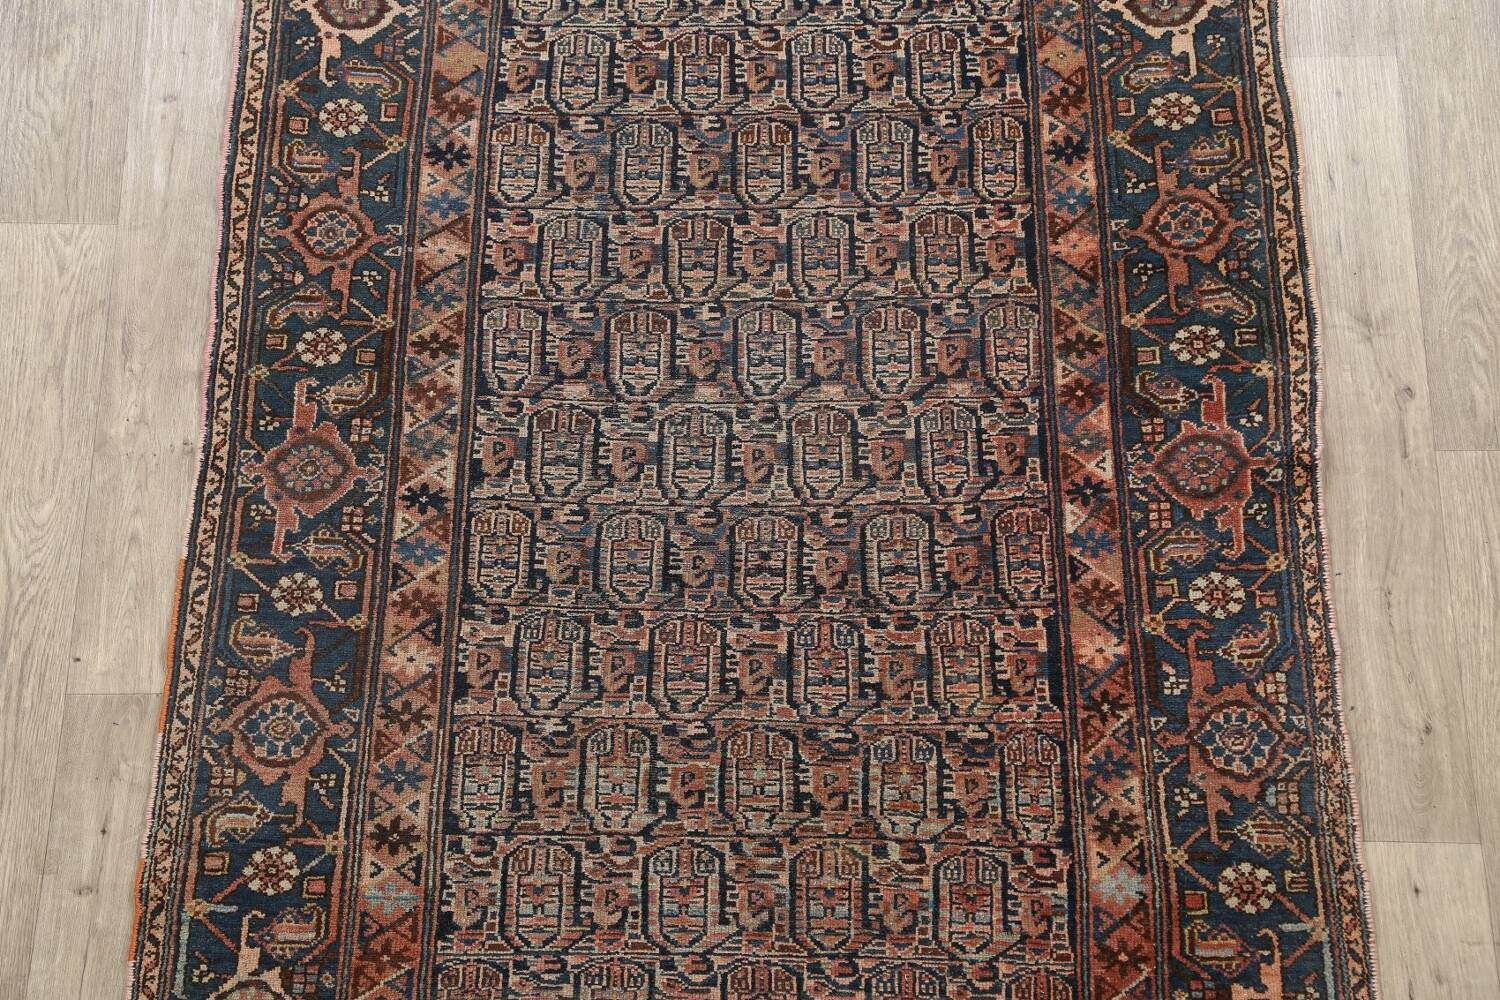 Pre-1900 Antique Tribal Malayer Persian Area Rug 4x6 image 3